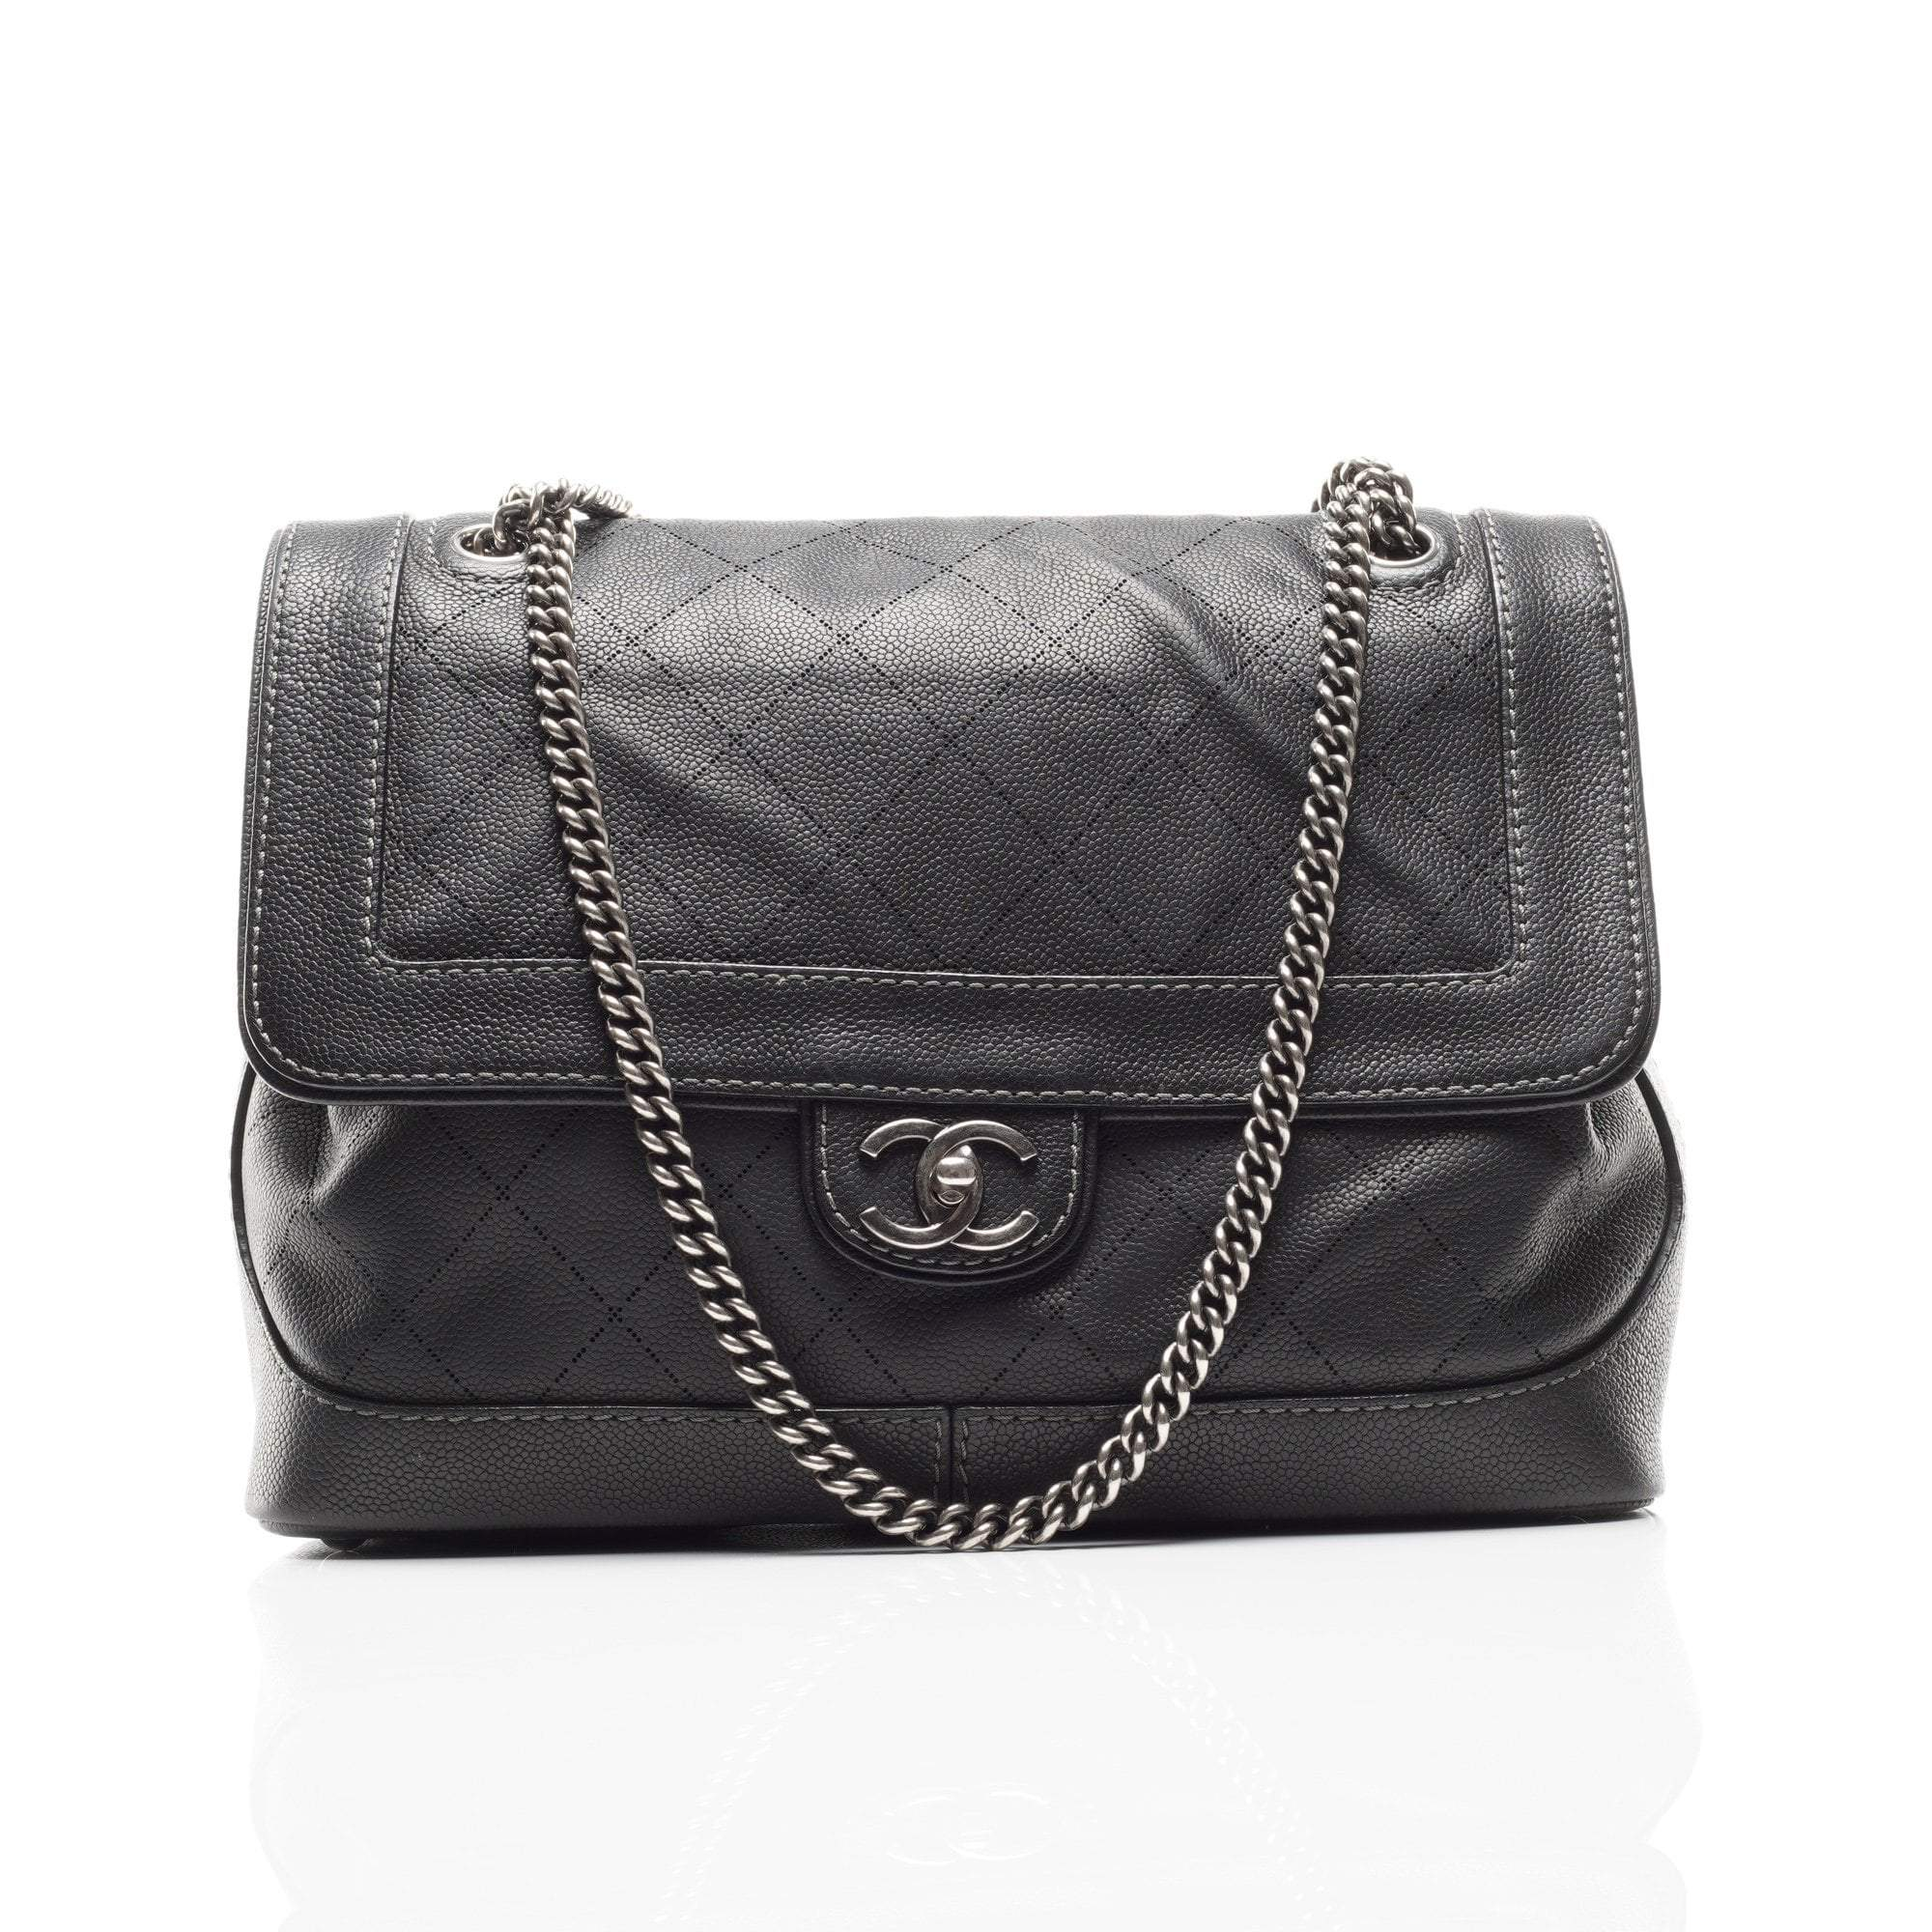 Chanel Gun Metal Strap Flap Bag